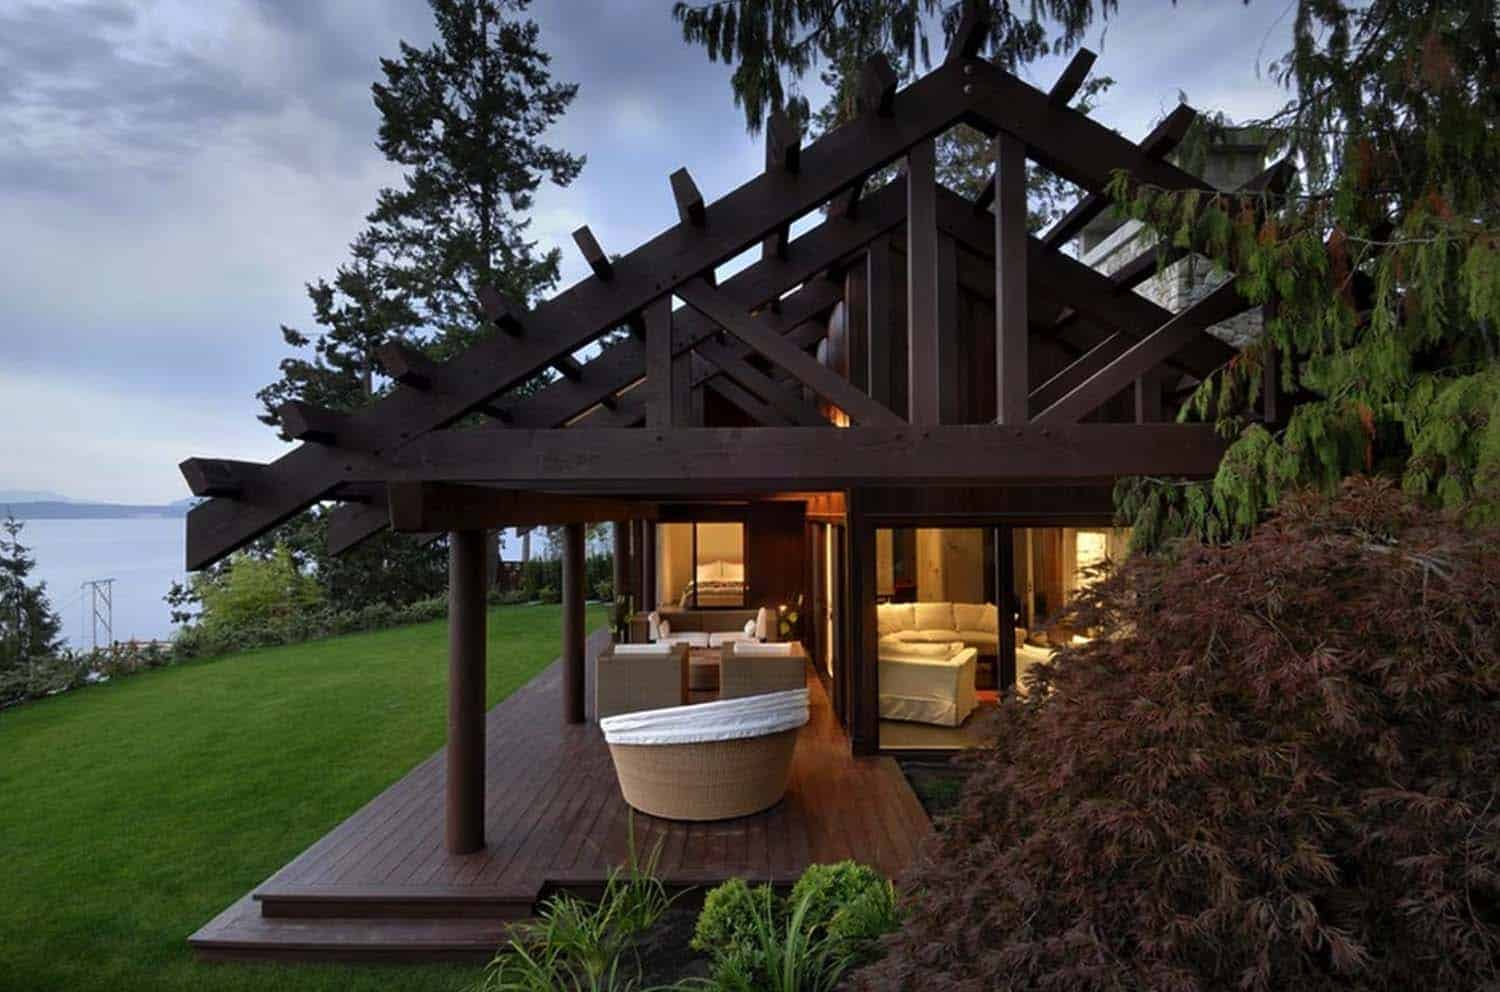 vancouver-island-residence-mckinley-burkart-architects-16-1-kindesign